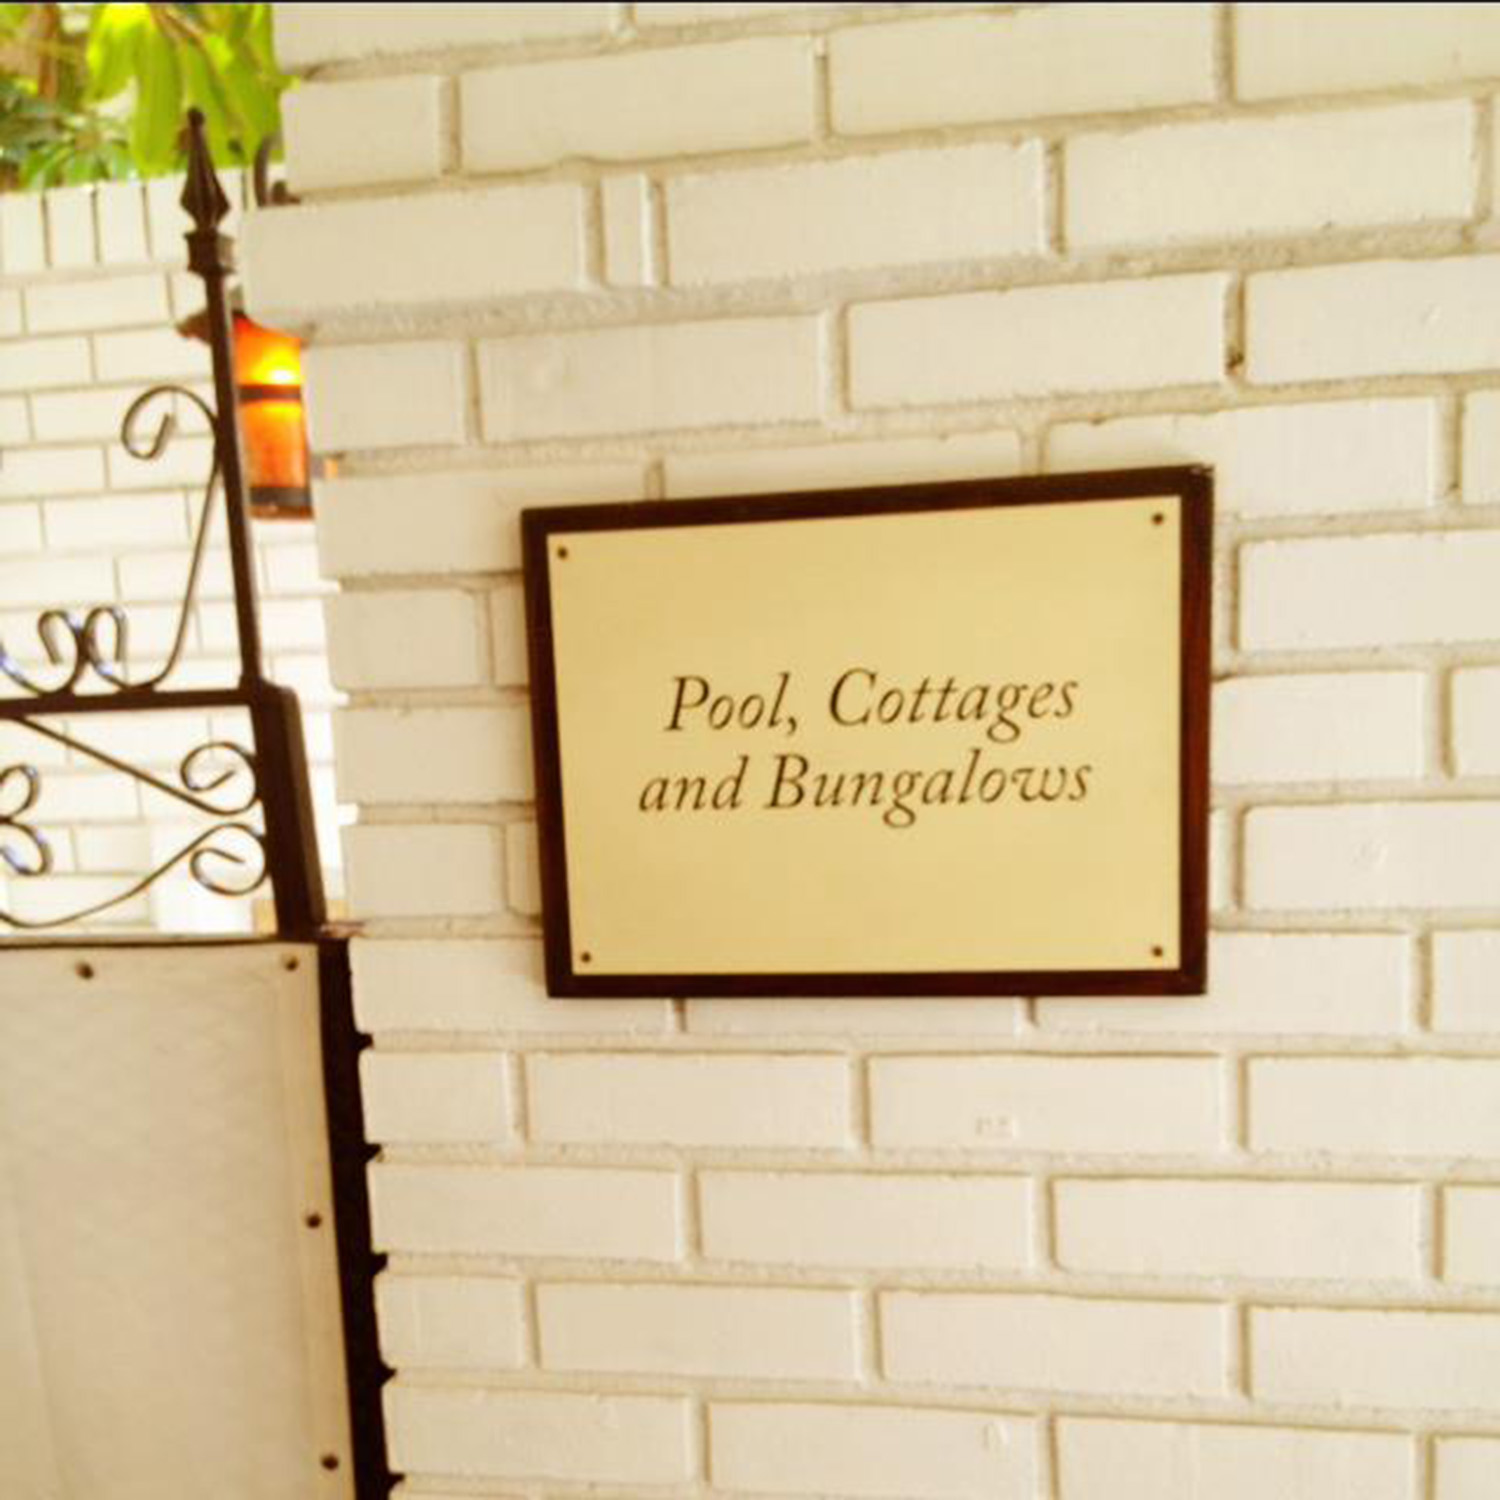 A sign that reads, 'Pool, Cottages and Bungalows', at the Chateau Marmont, July 2012